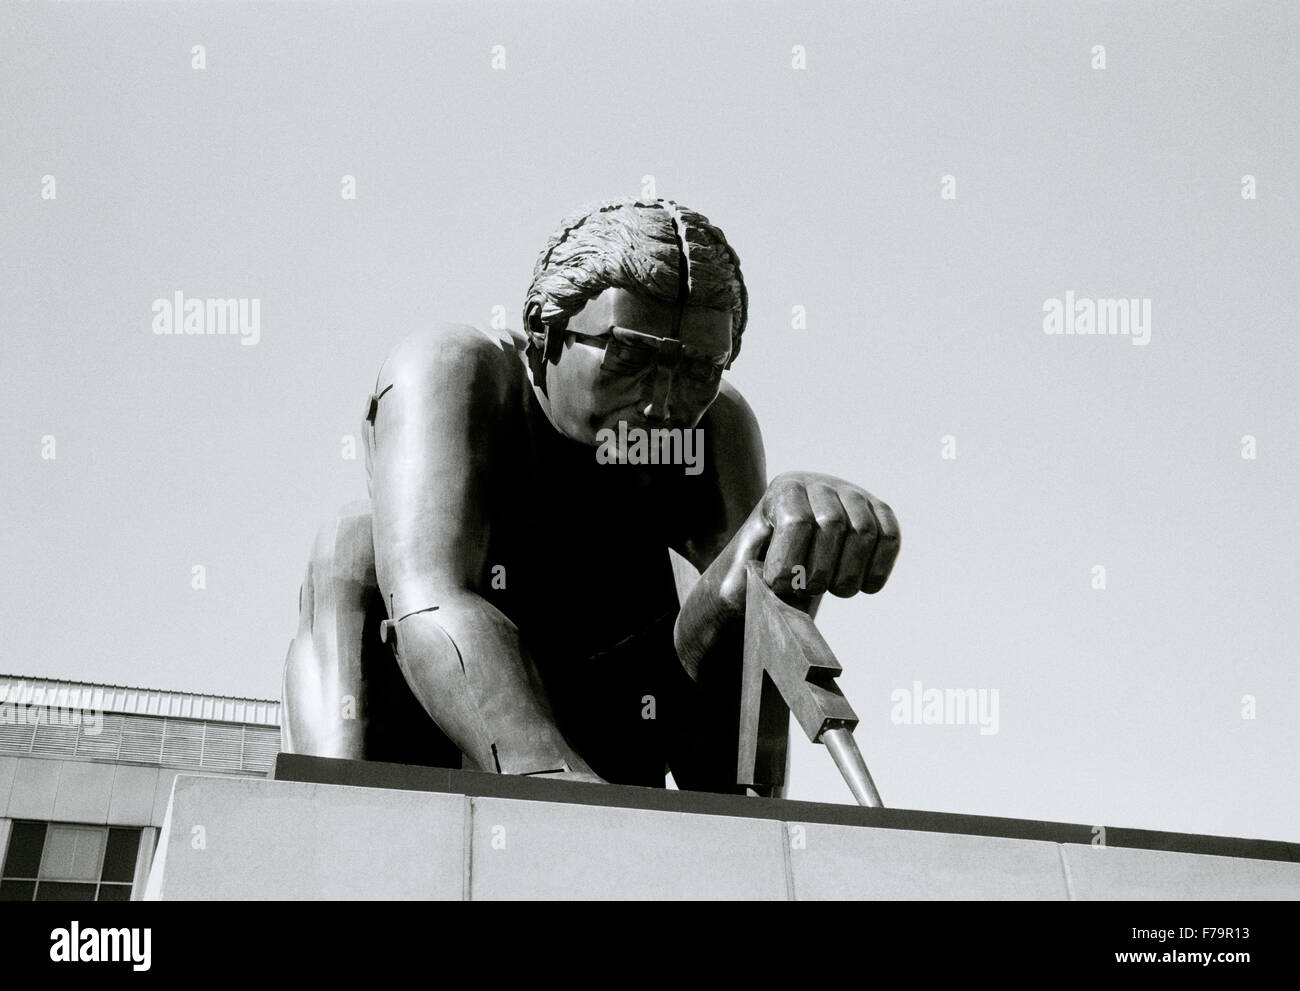 Eduardo Paolozzi sculpture of Sir Isaac Newton in the British Library in London in England in Great Britain in the - Stock Image